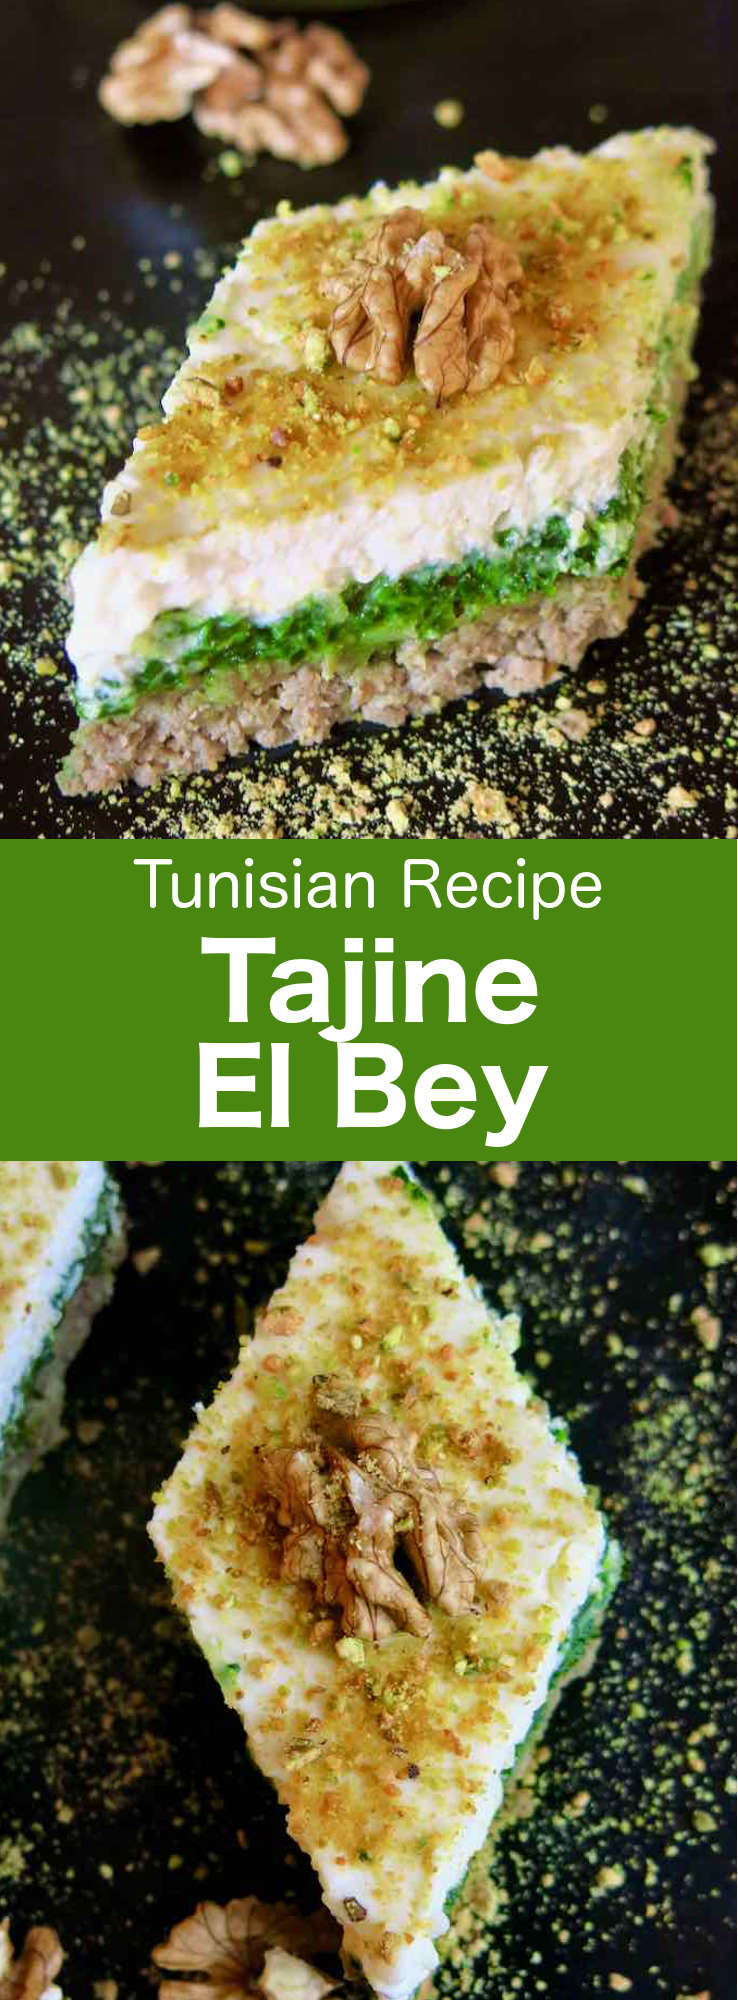 Tajine el Bey is a delicious and refined variant of Tunisian tajine. It consists of 3 pranks mounted separately to compose a layer of meat, a spinach based and the last floor made of ricotta. #Tunisia #Tunisian #TunisianCuisine #TunisianRecipe #NorthAfricanCuisine #NorthAfricanRecipe #NorthAfrica #Maghreb #MaghrebCuisine #WorldCuisine #196flavors